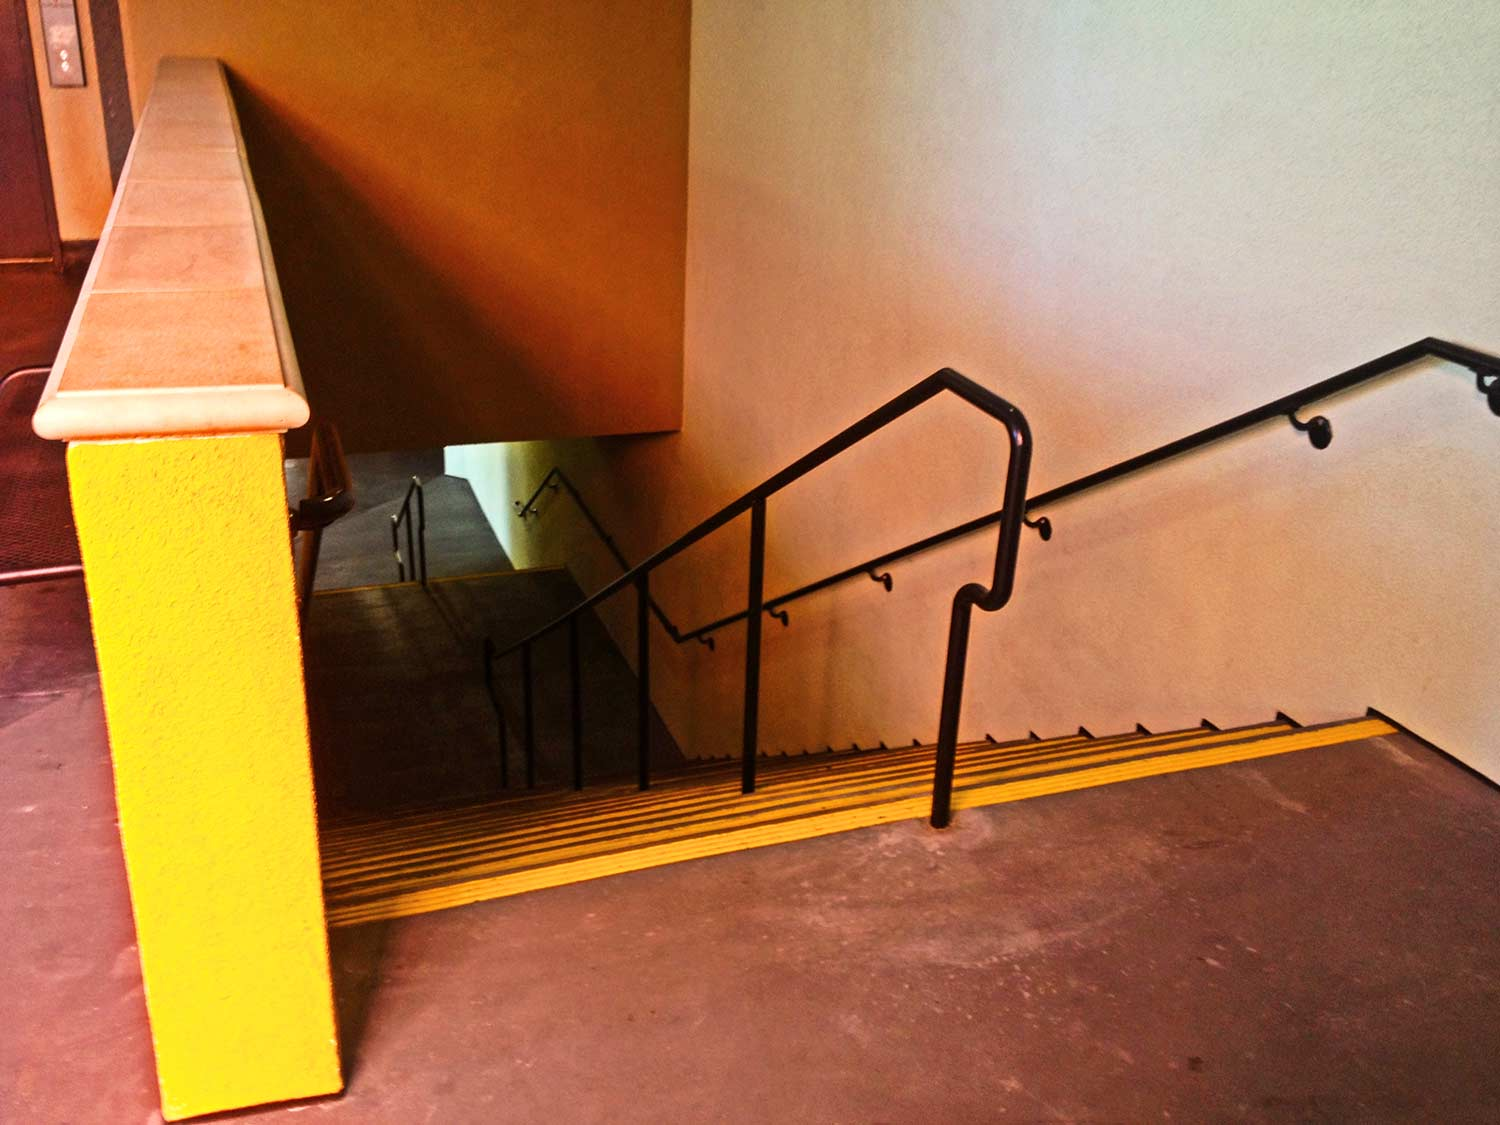 Stairs at Horton Plaza